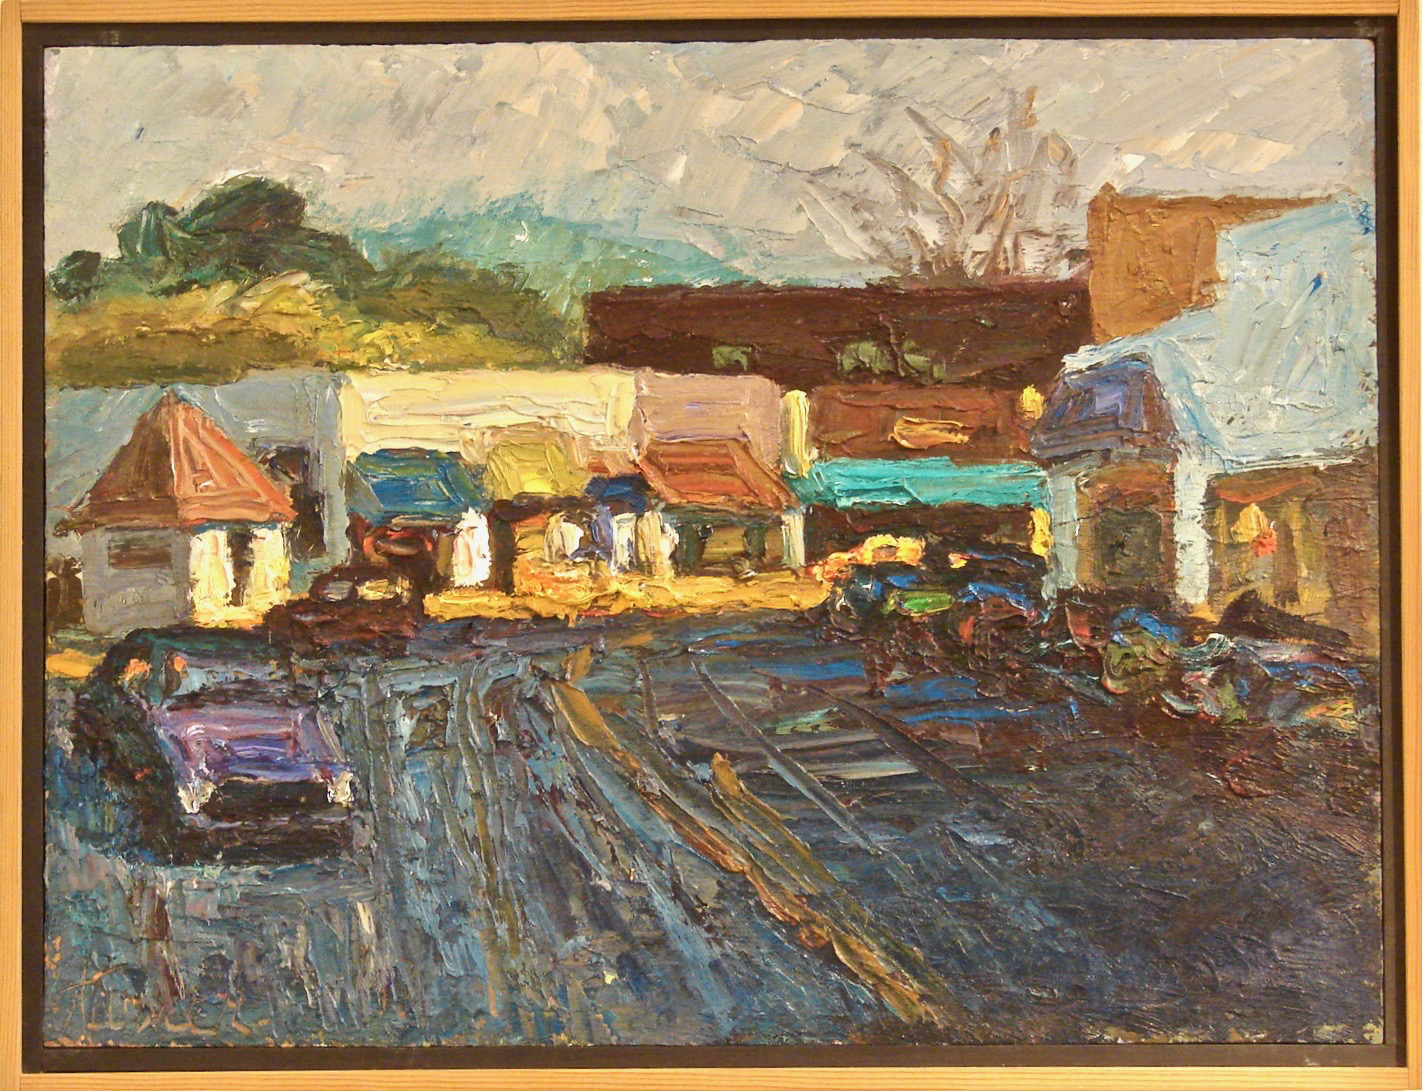 Oil on Masonite by Jerrold Turner of Marin County Town | DANIEL STEIN Antiques San Francisco CA